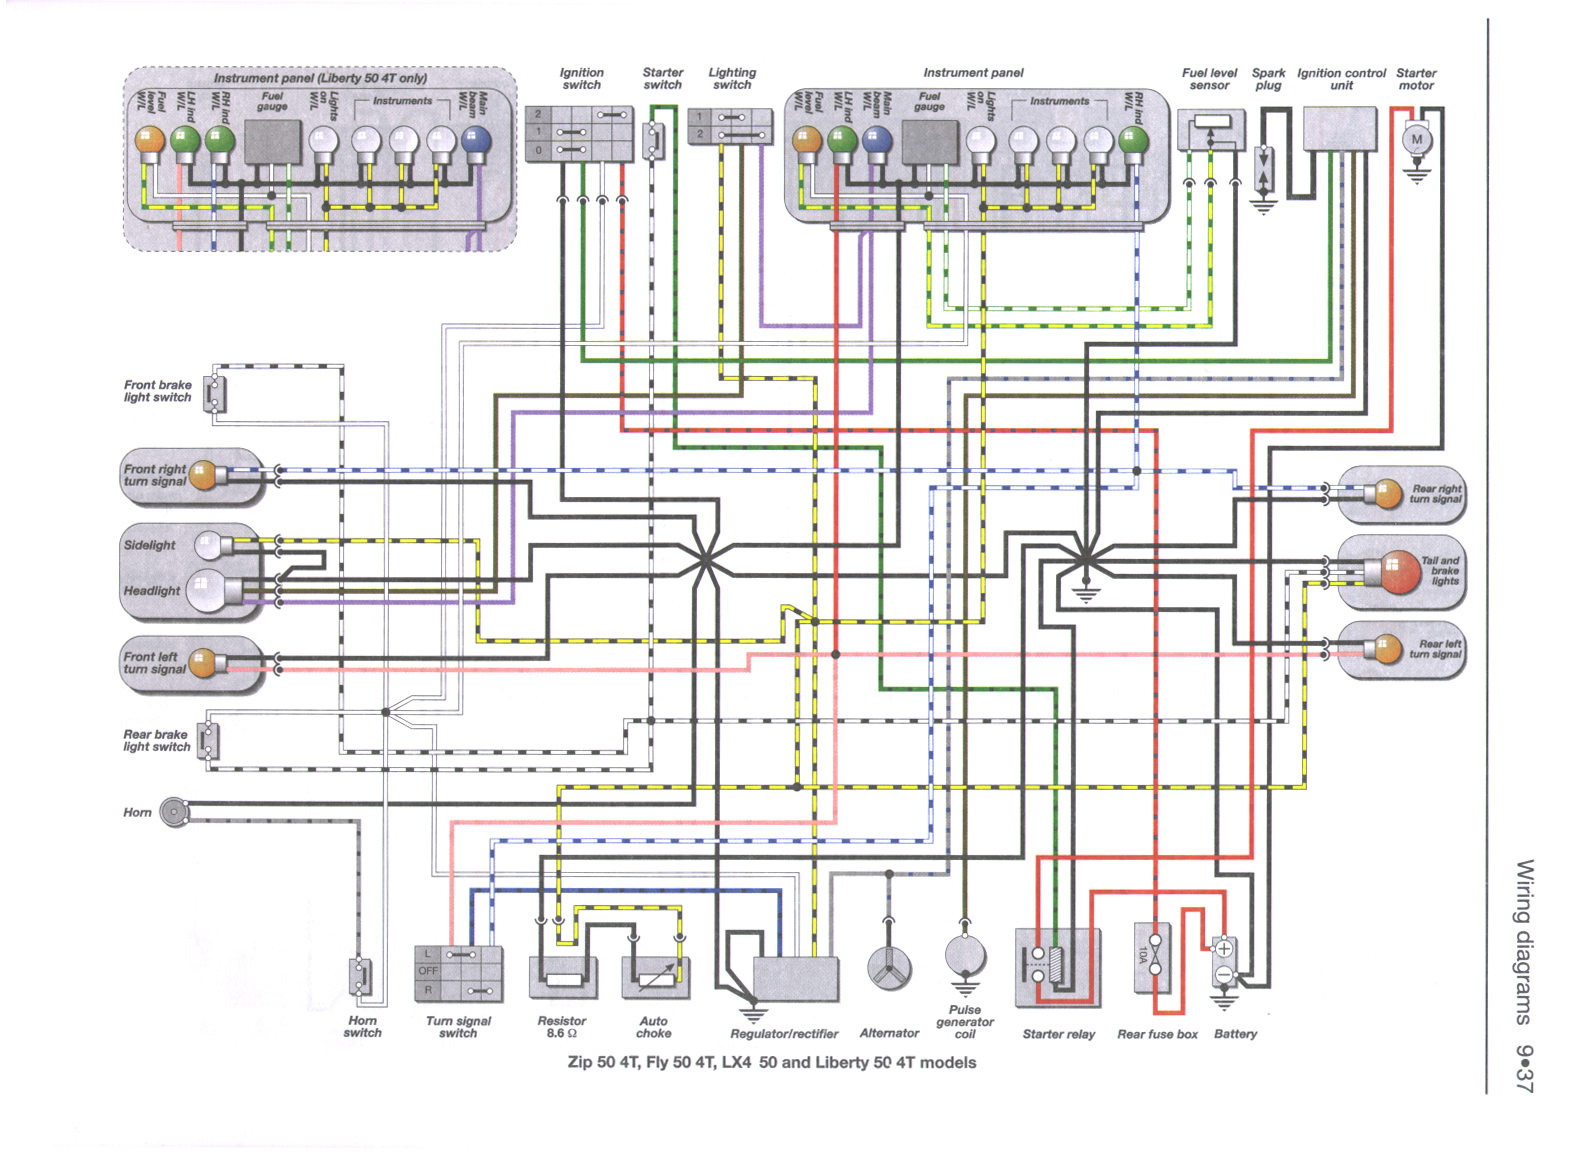 X8 Wiring Diagram Library 2002 Honda Shadow 1100 Index Of Manuals Circuits Rh Vespaforum Com Piaggio 250